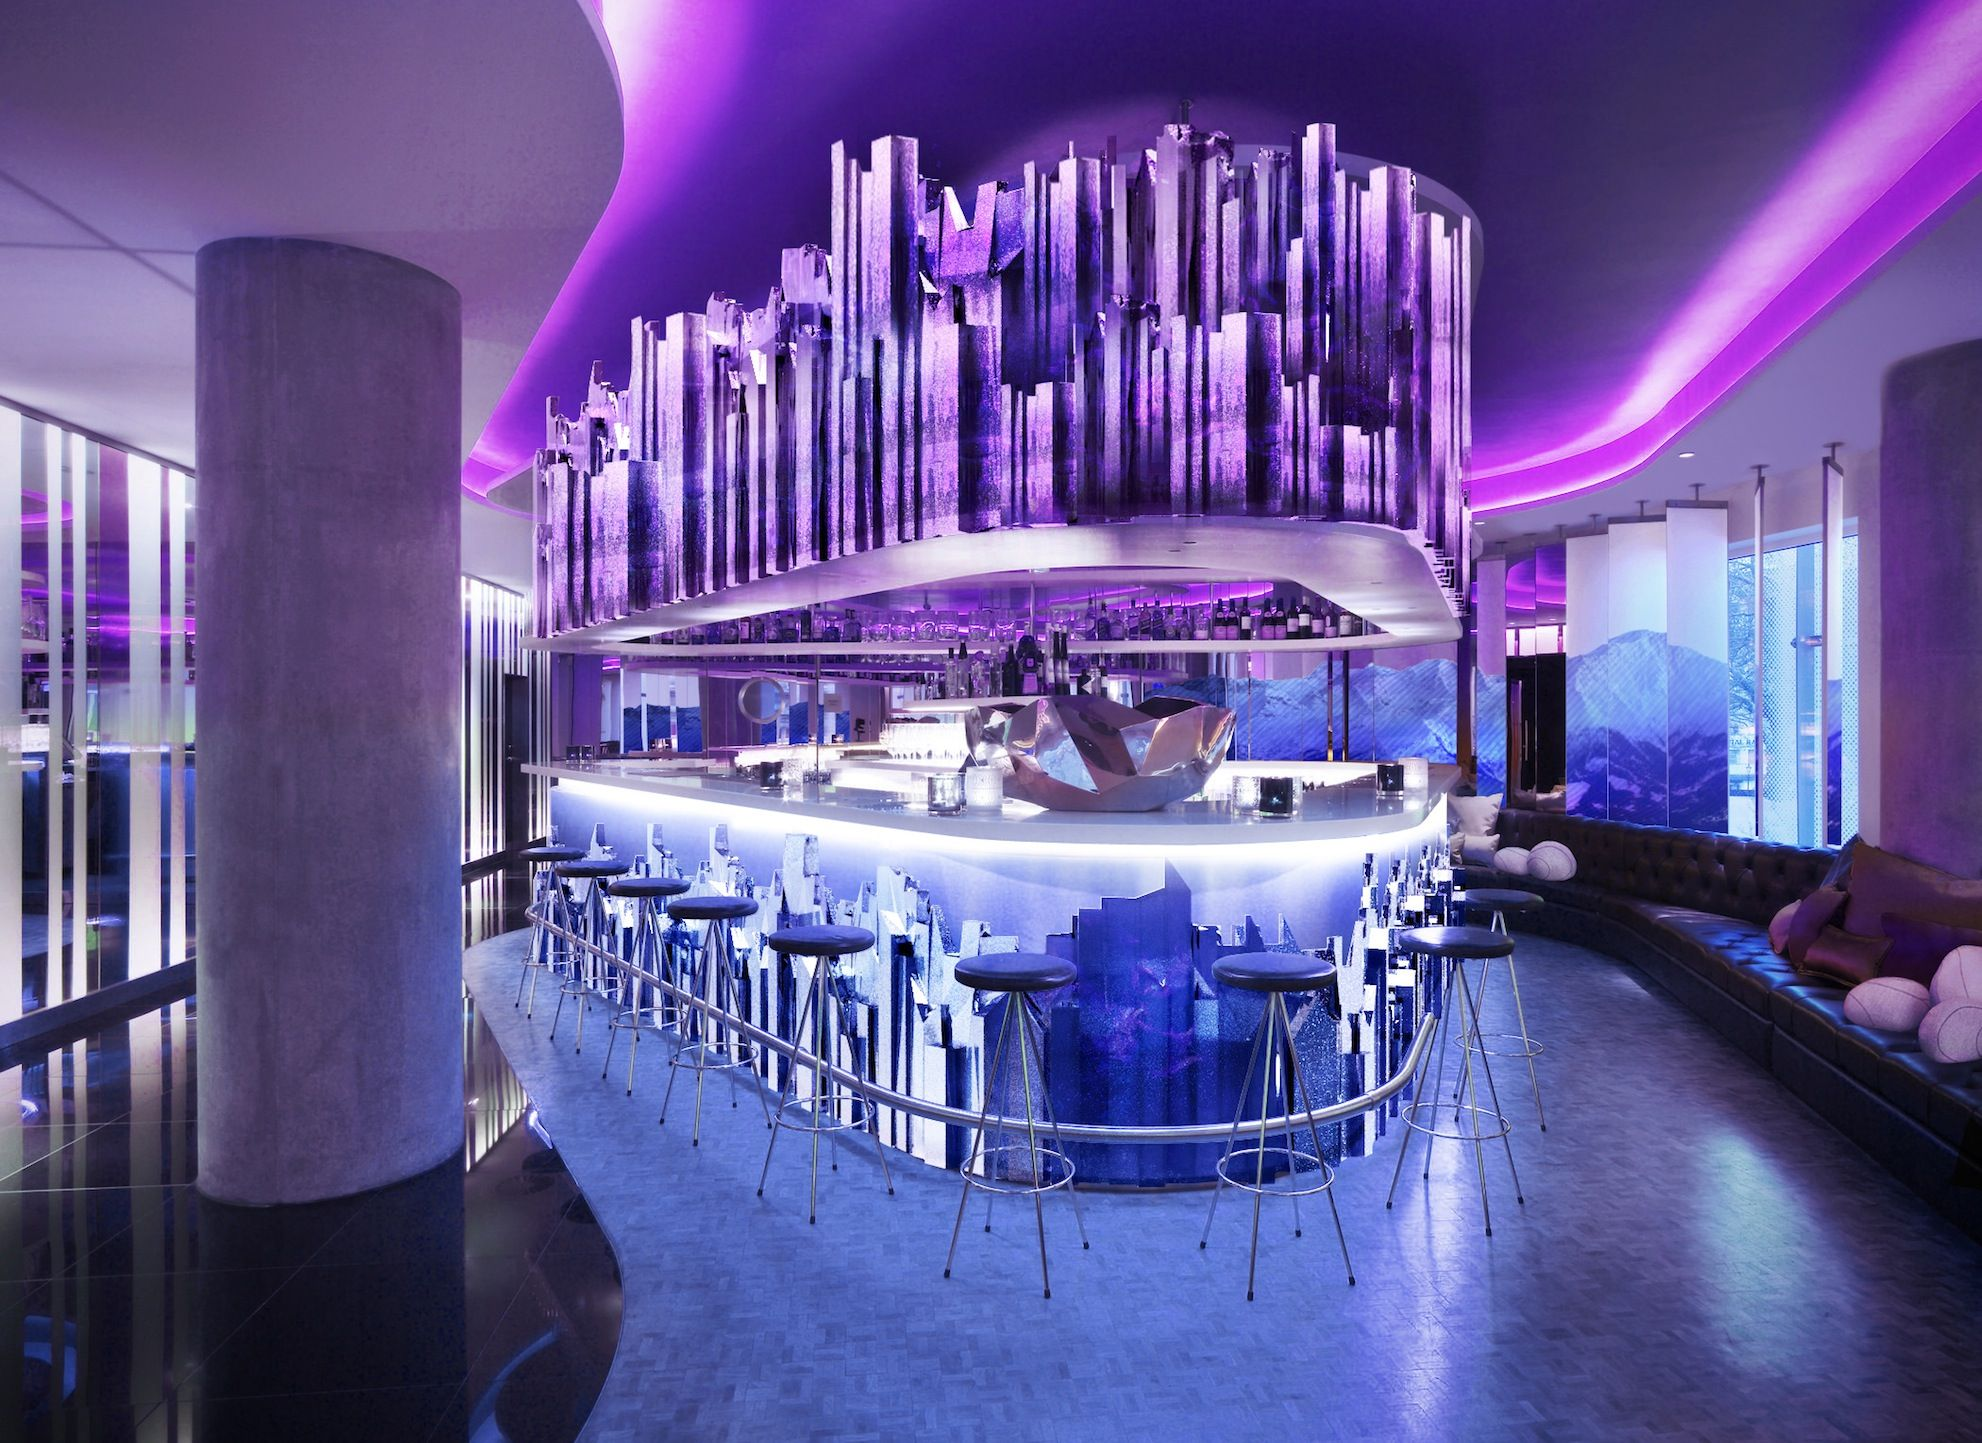 W Verbier Takeover Lounge Bar At London Leicester Square Restyled5b145d421 Jpg